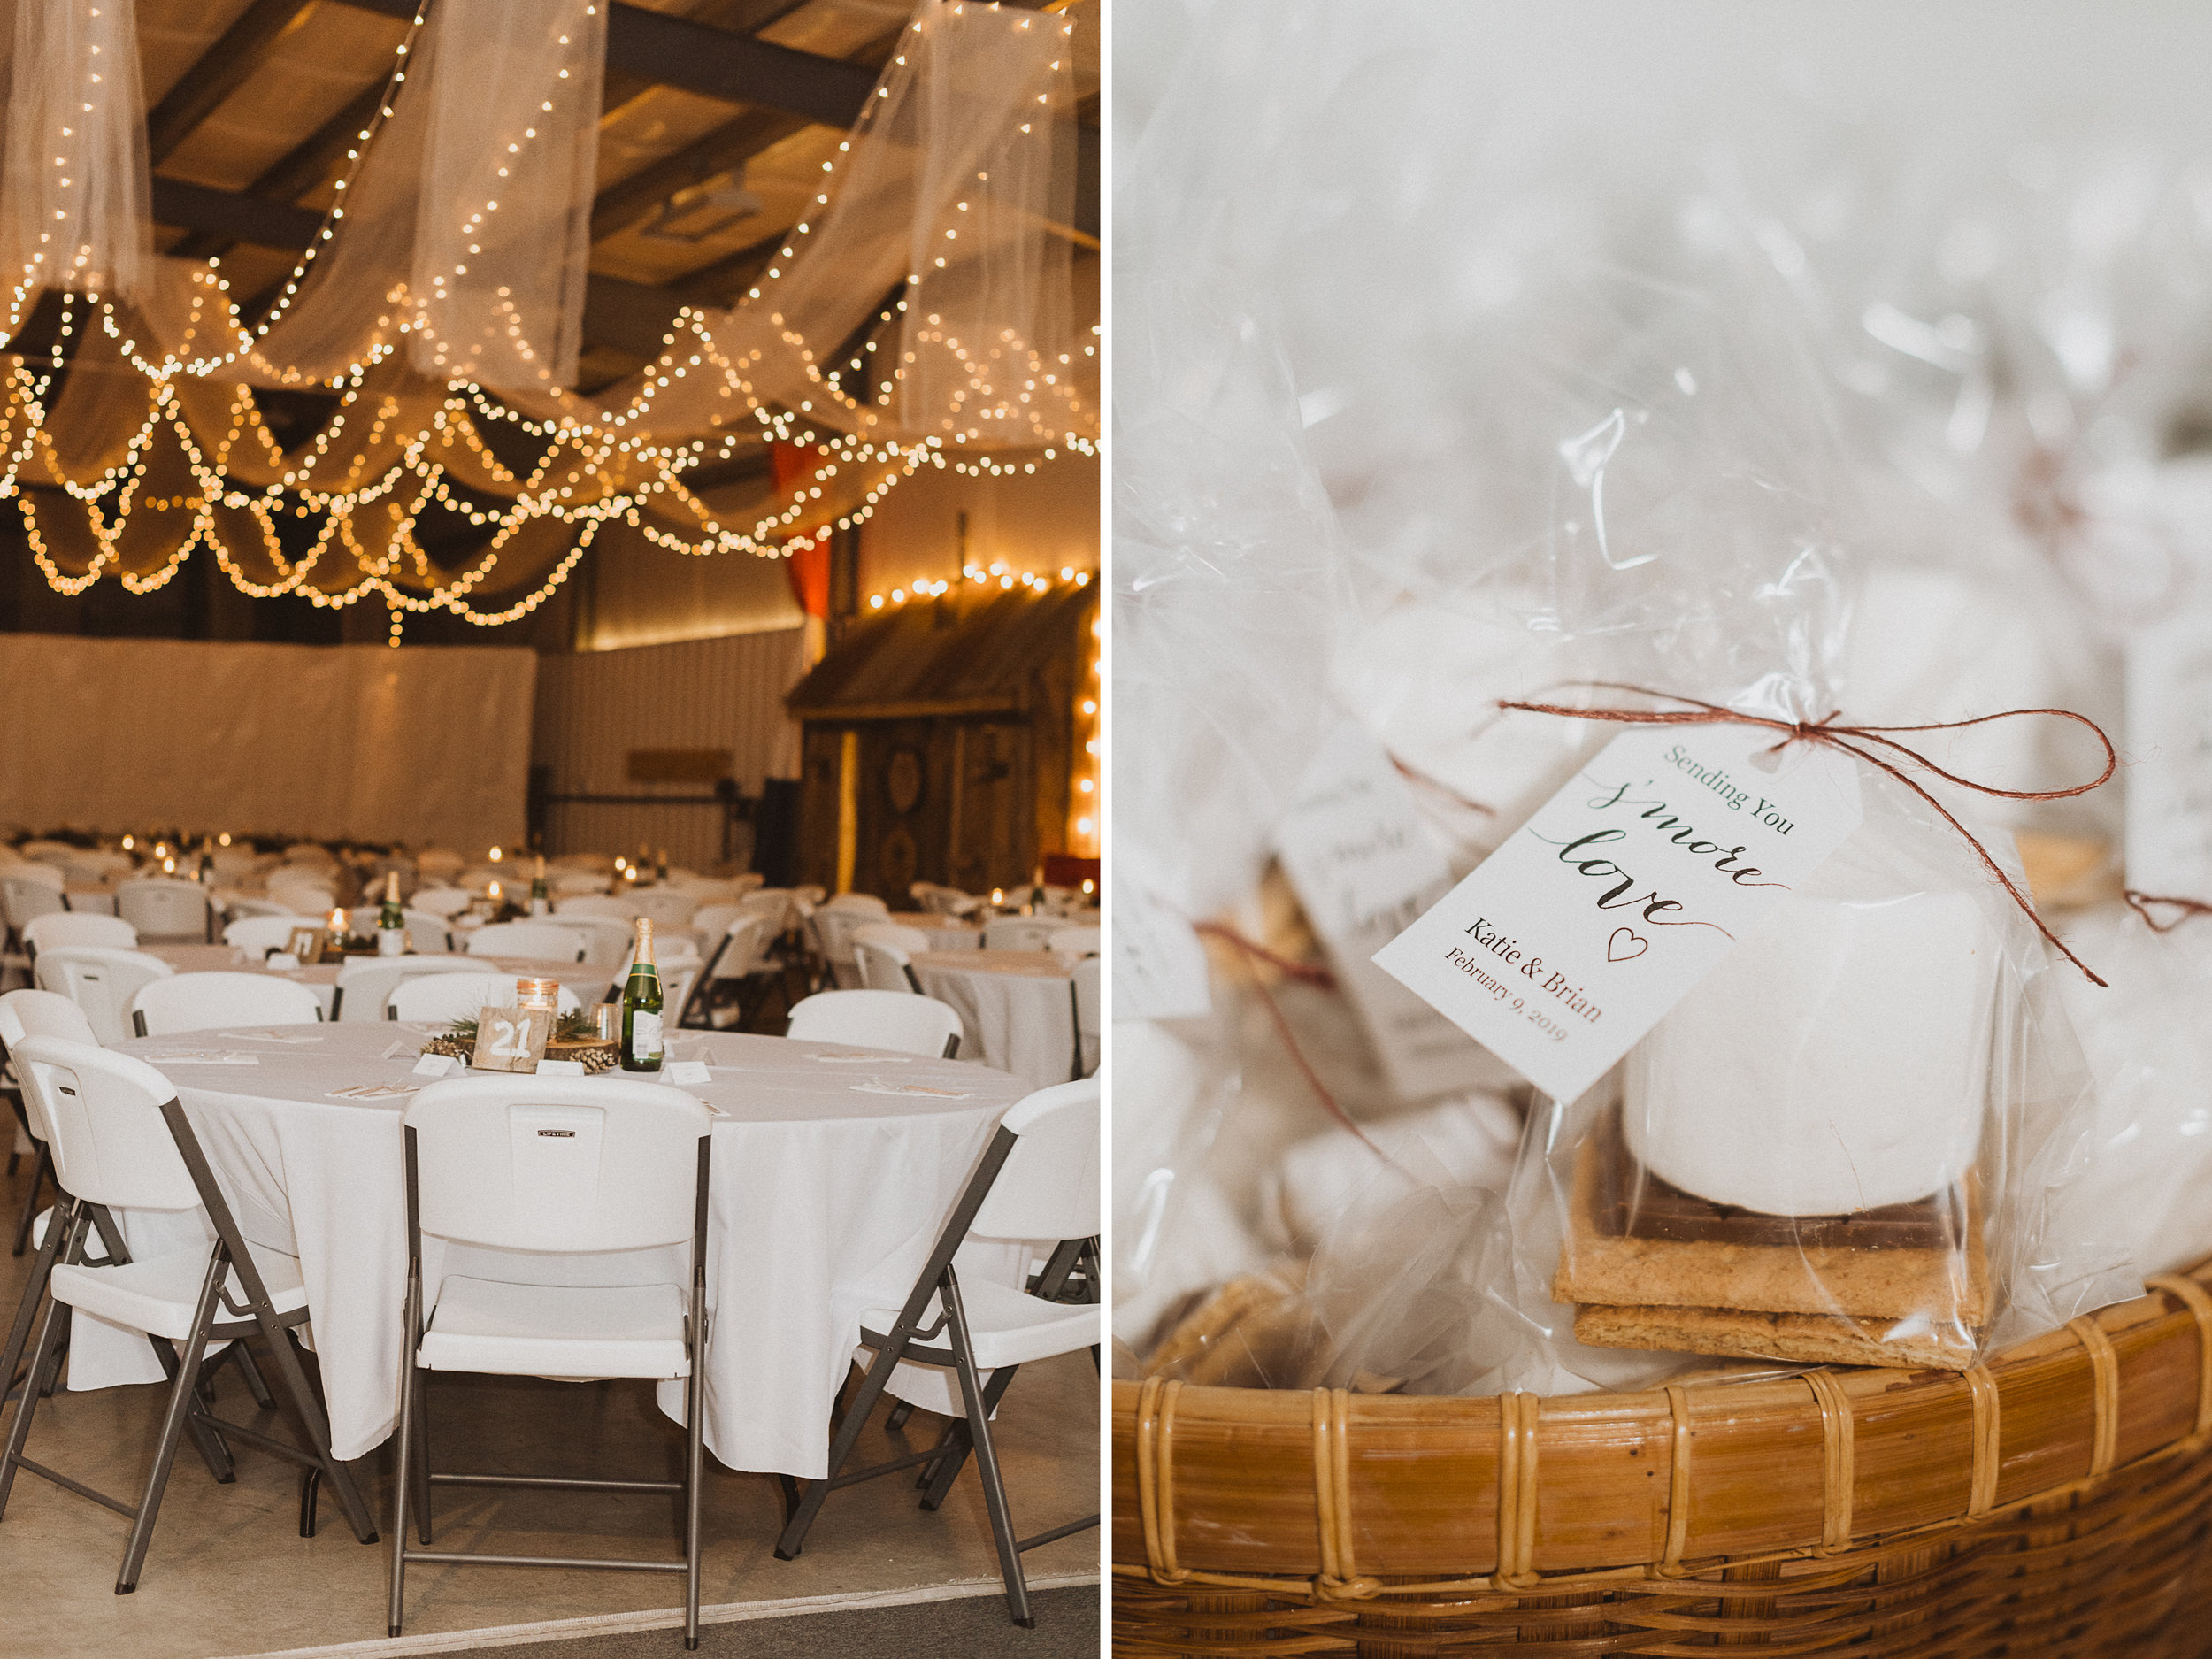 barn-rustic-wedding-favors.jpg